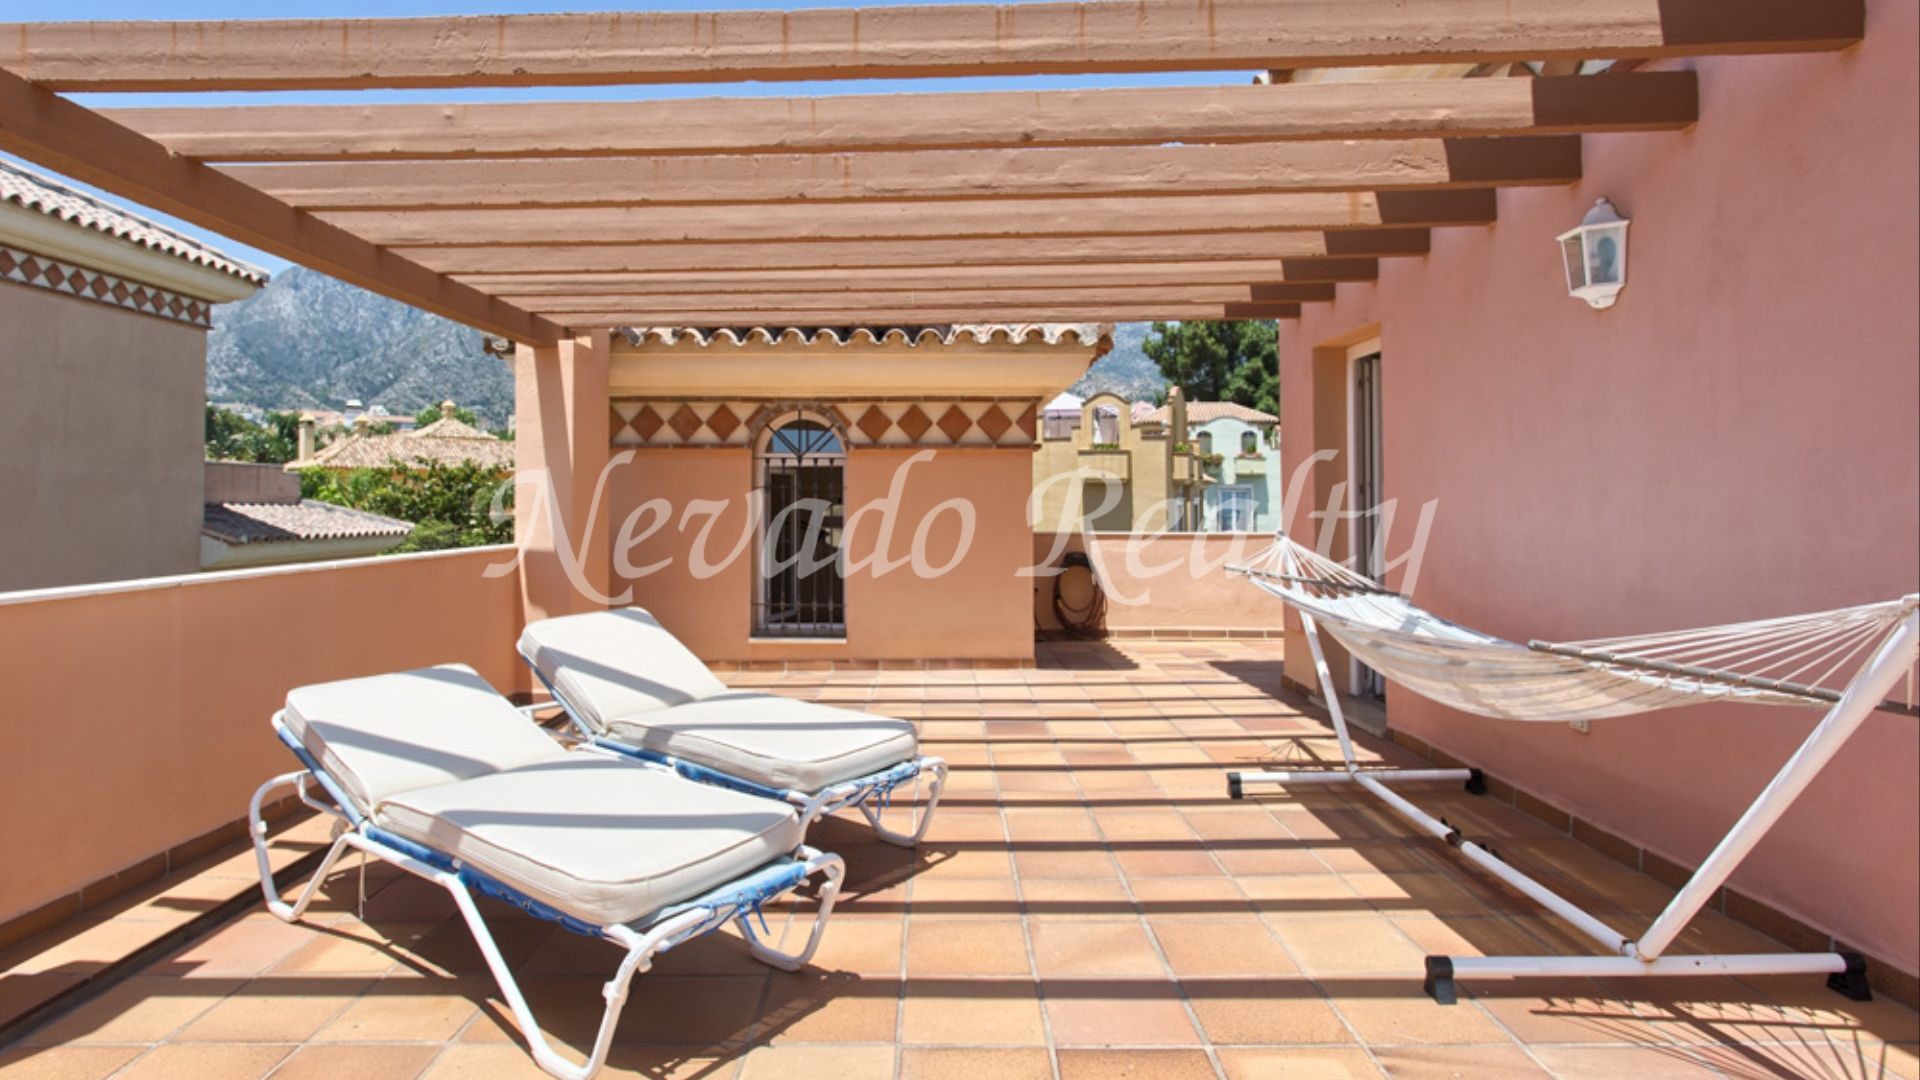 Magnificent townhouse for sale in Huerta Belón, privacy and tranquility